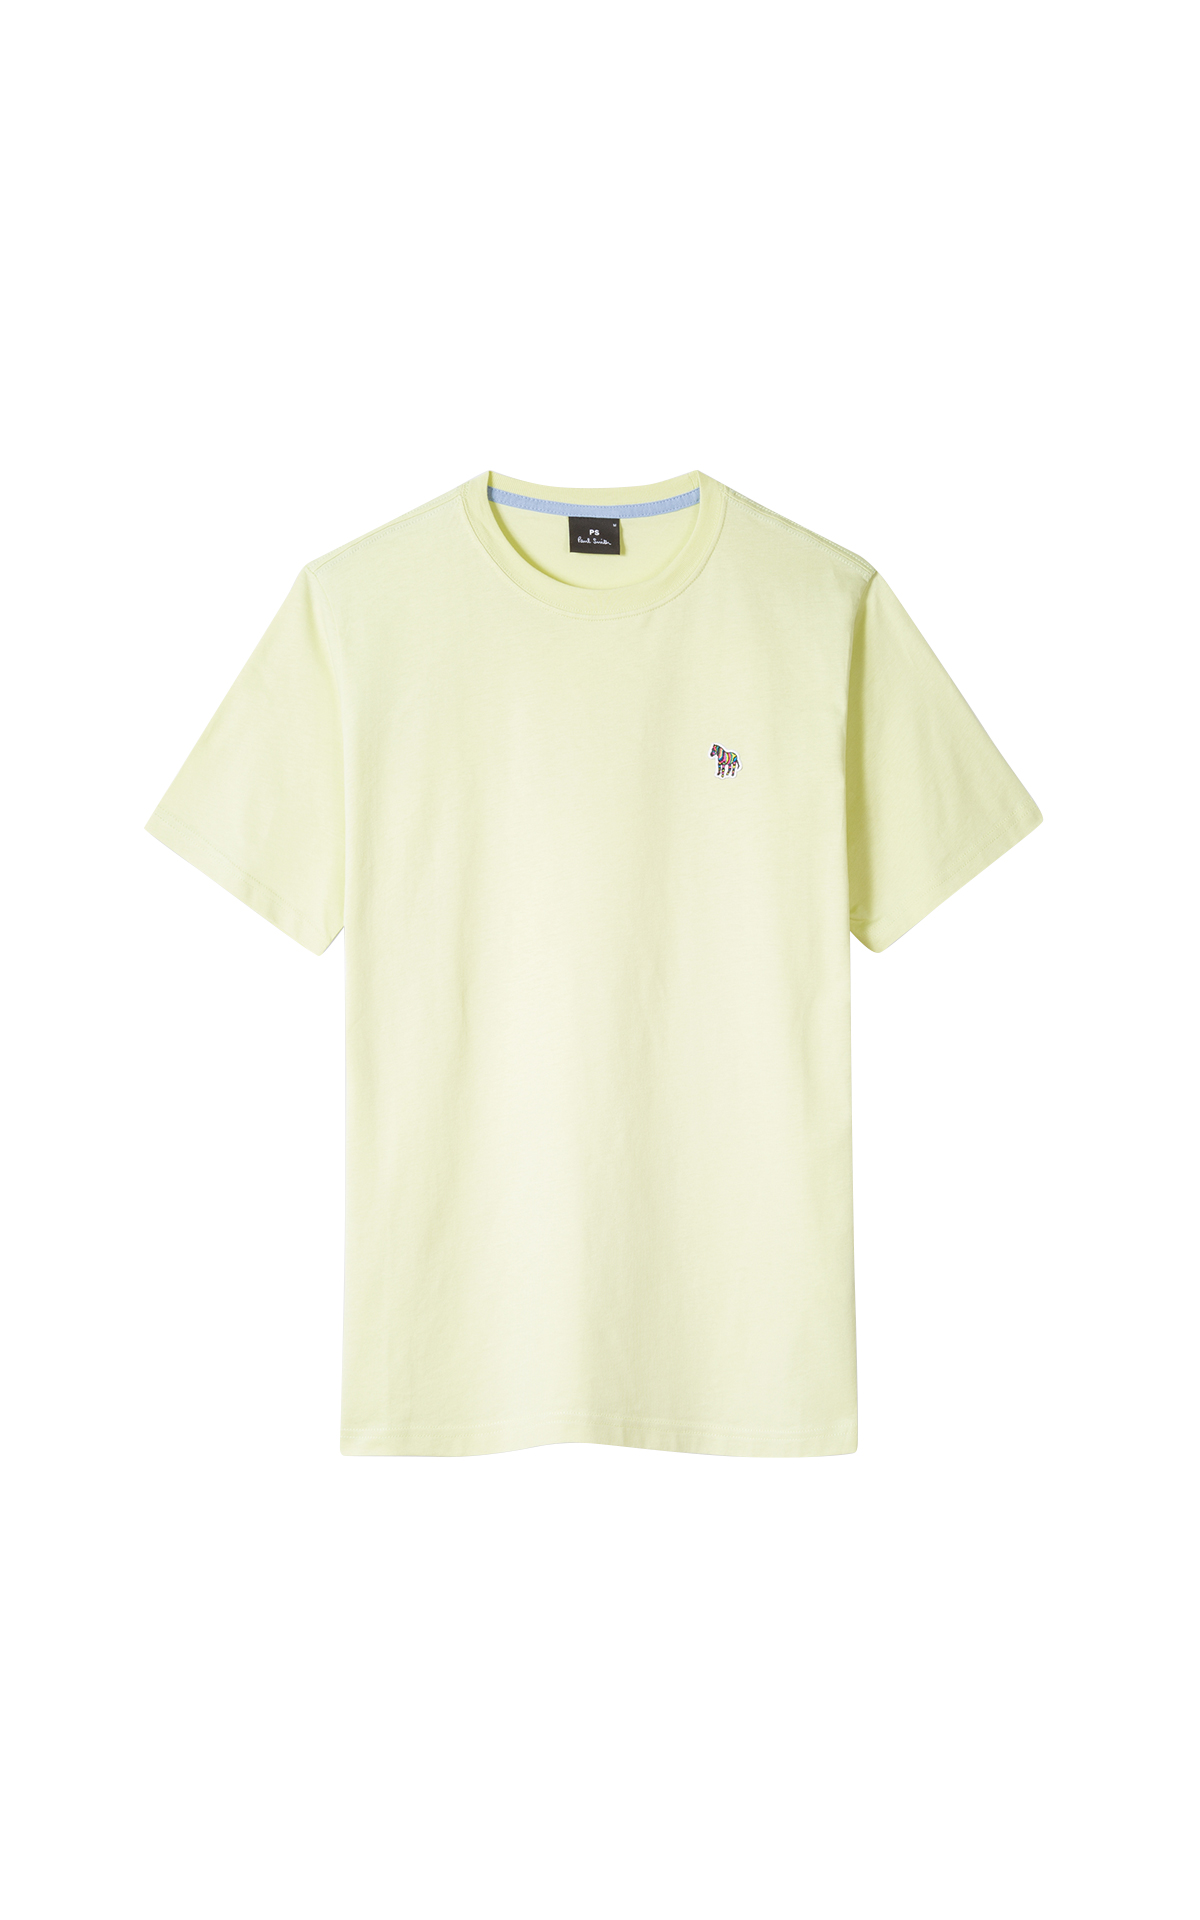 La Vallée Village Paul Smith t-shirt jaune homme